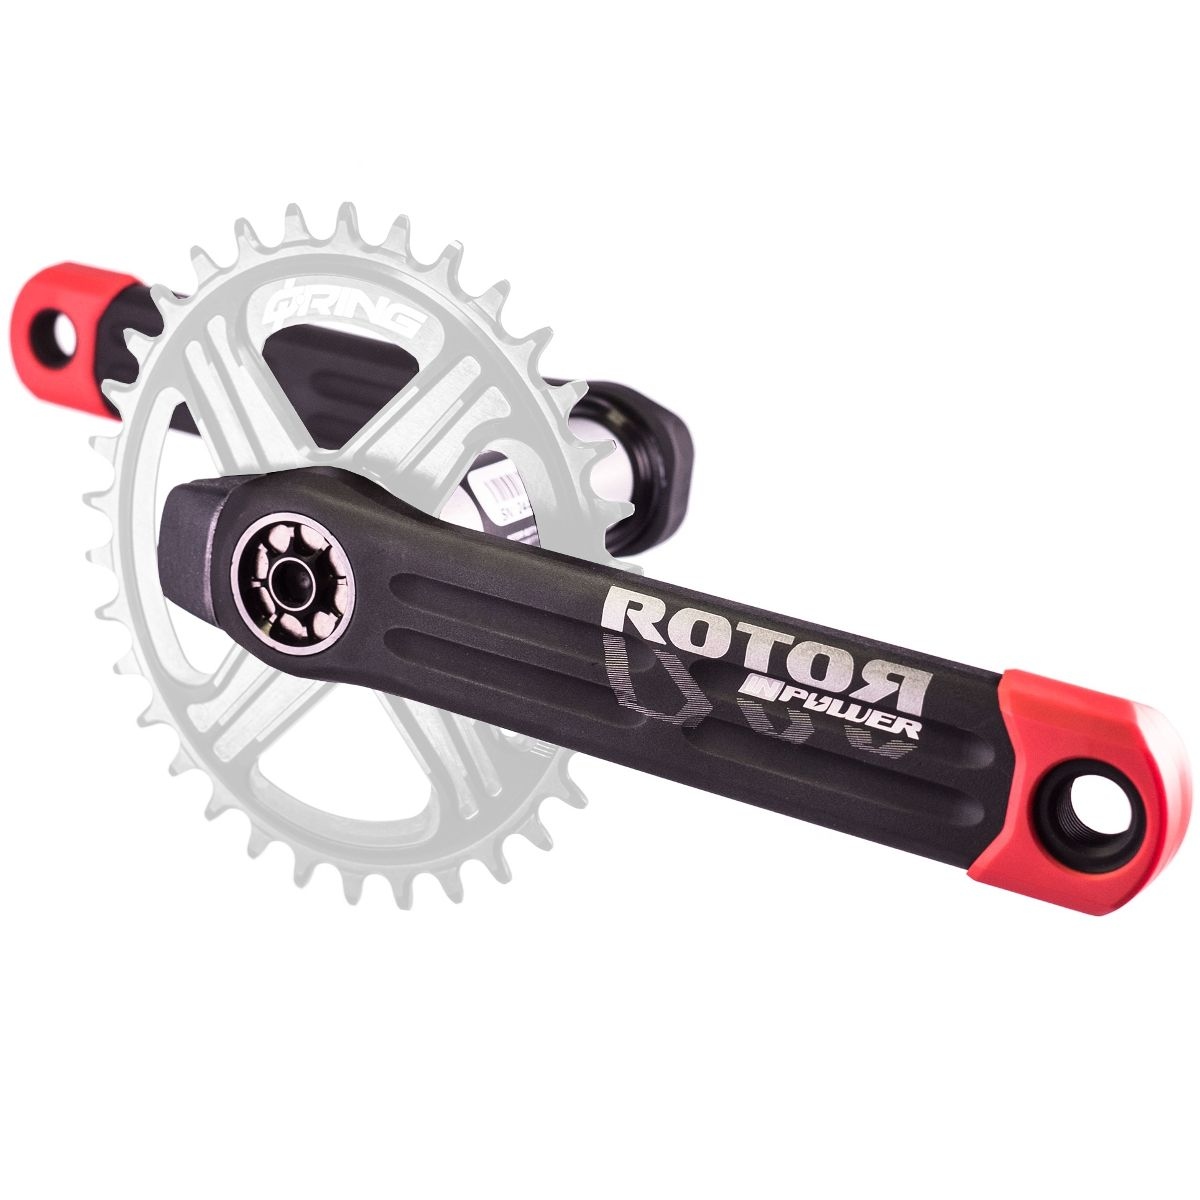 INpower MTB DM crank with integrated power measurement/power meter